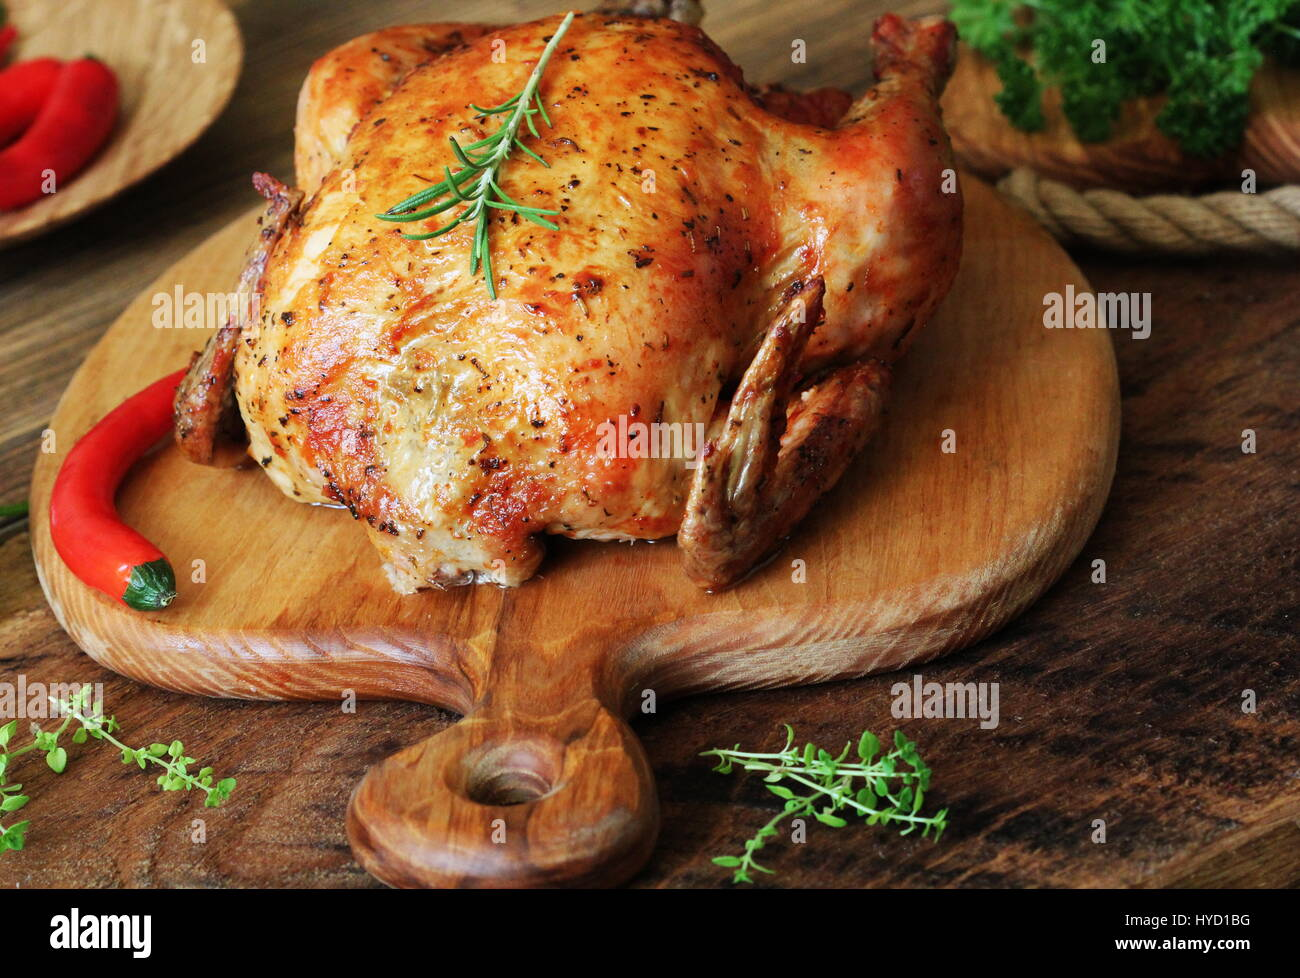 Whole roasted chicken on cutting board - Stock Image